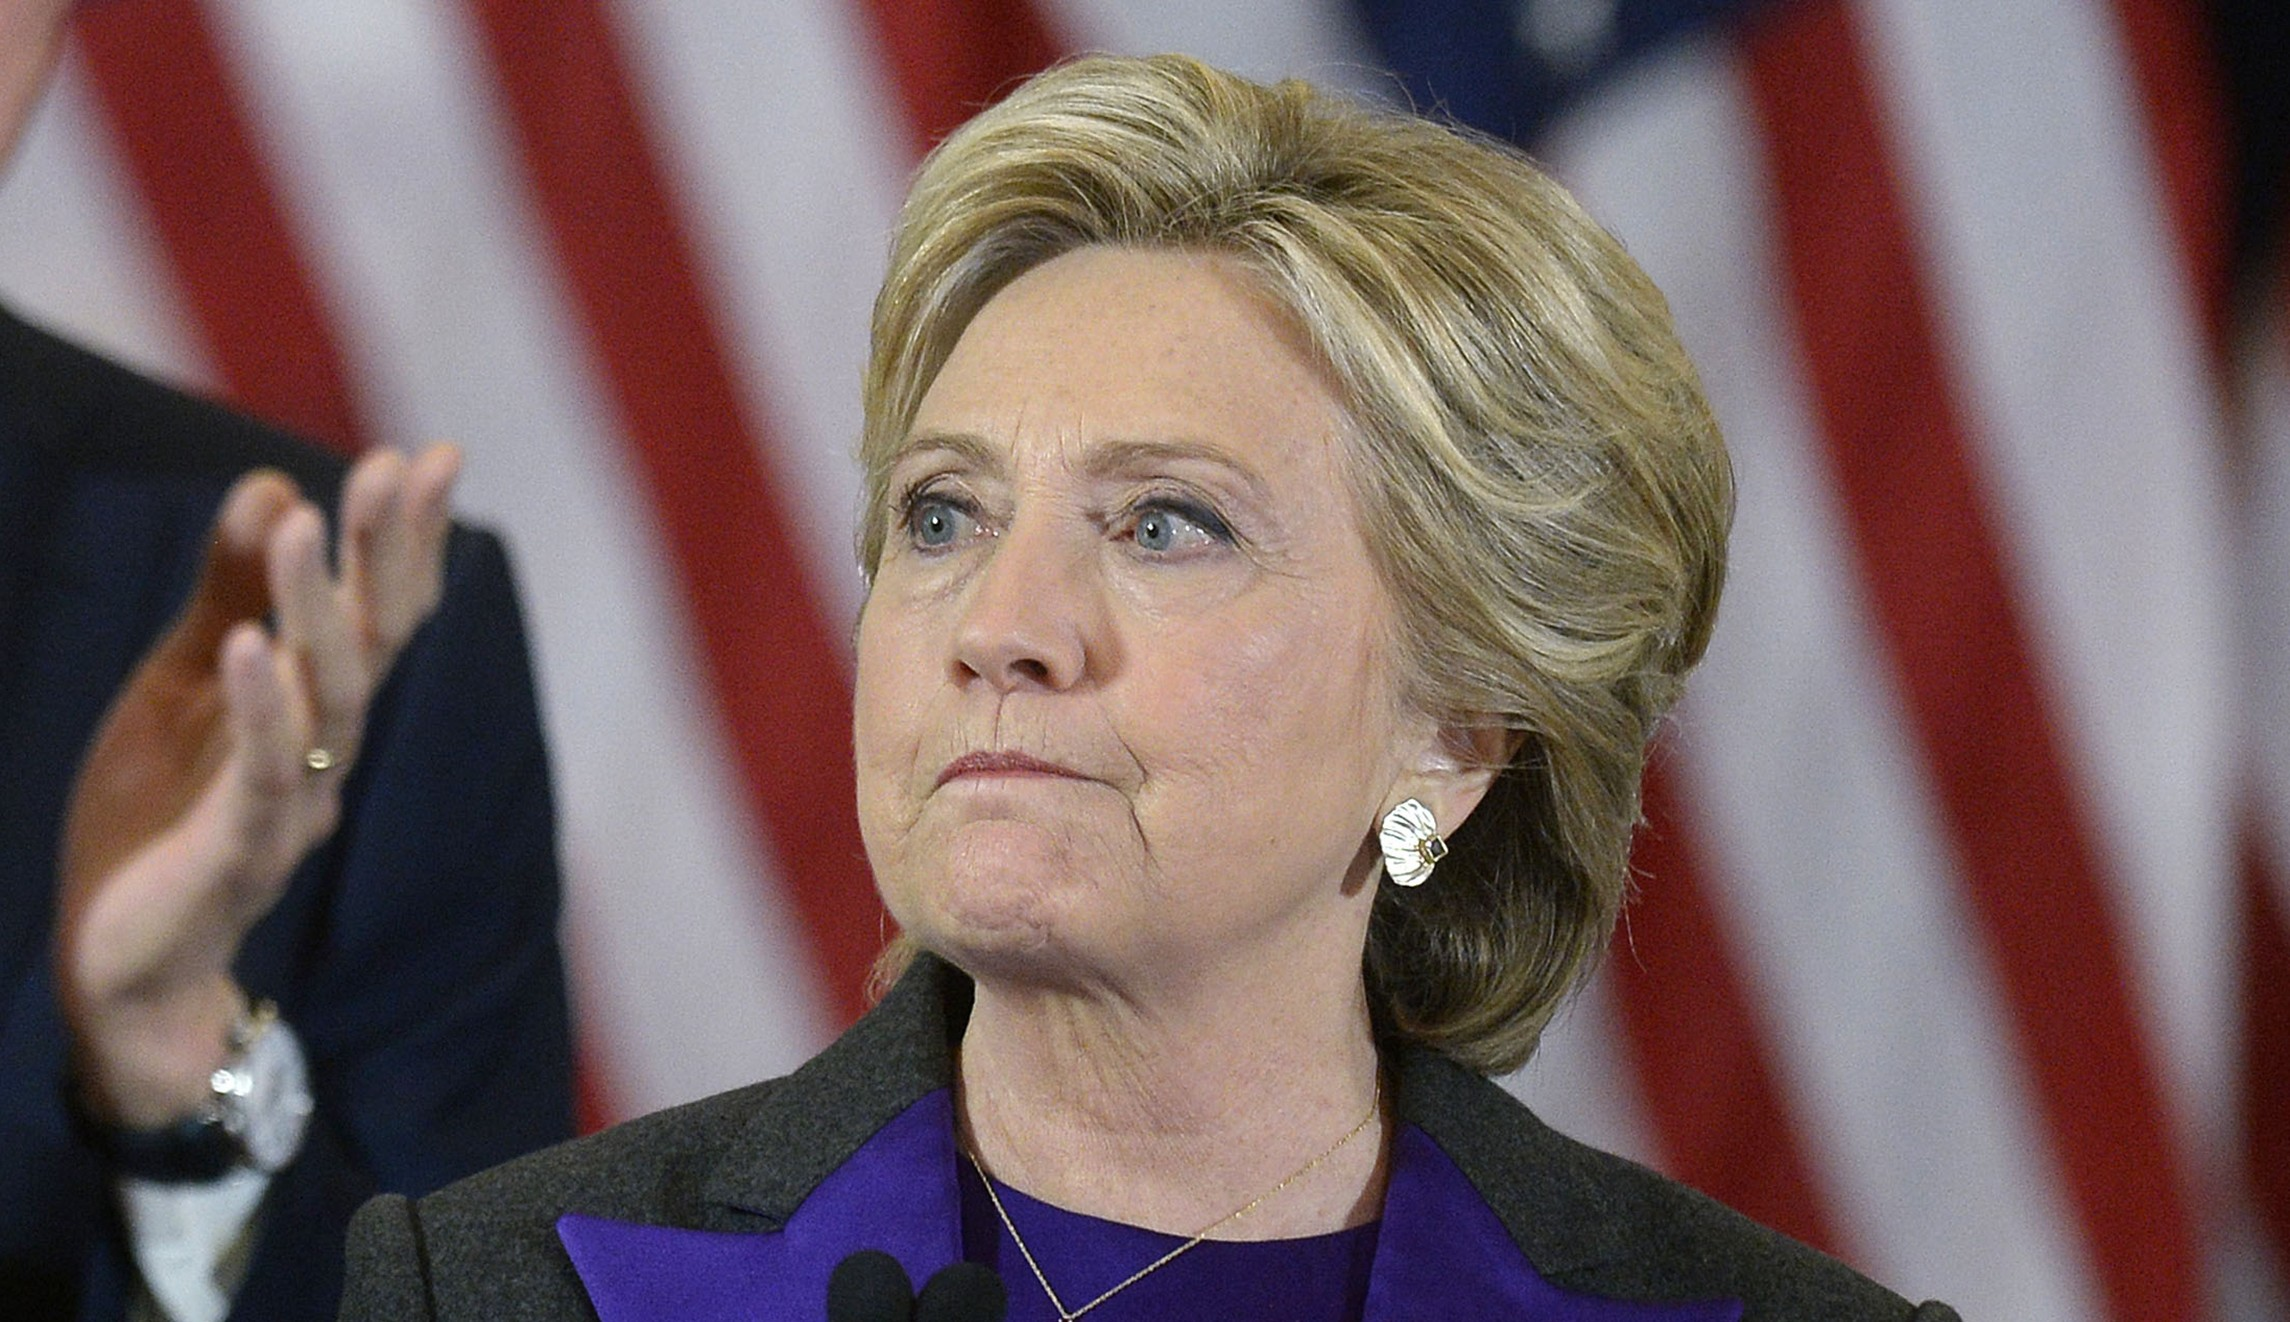 Hillary Clinton rules out running for US President in 2020